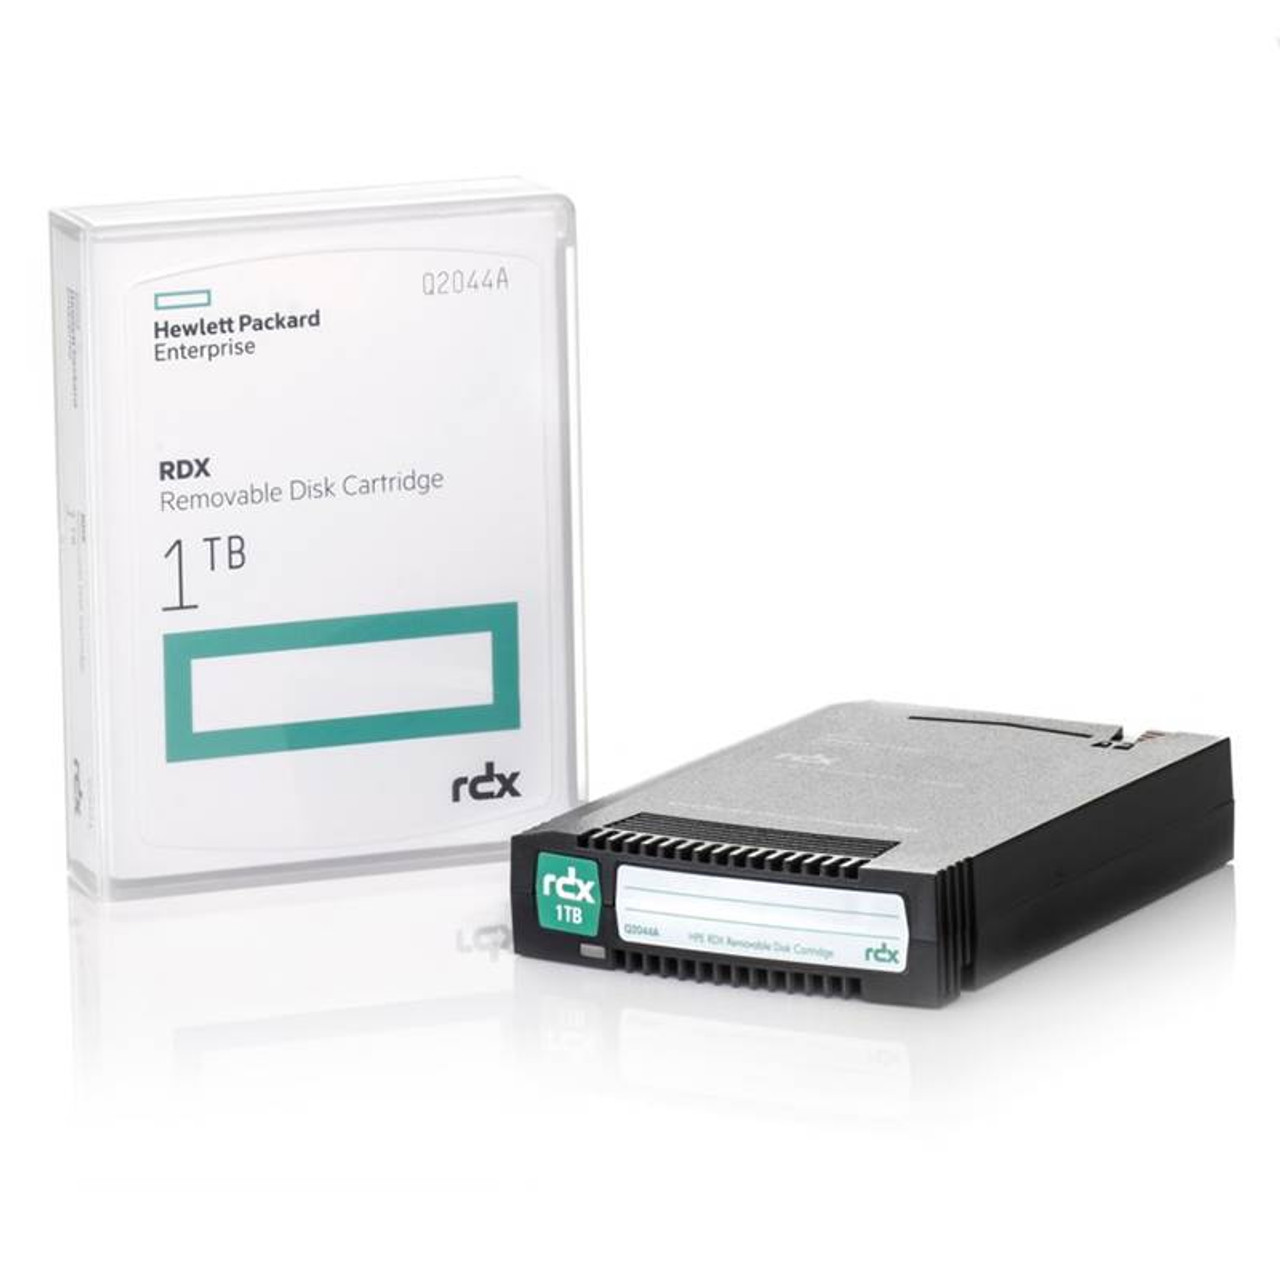 Image for HPE RDX 1TB Data Cartridge CX Computer Superstore